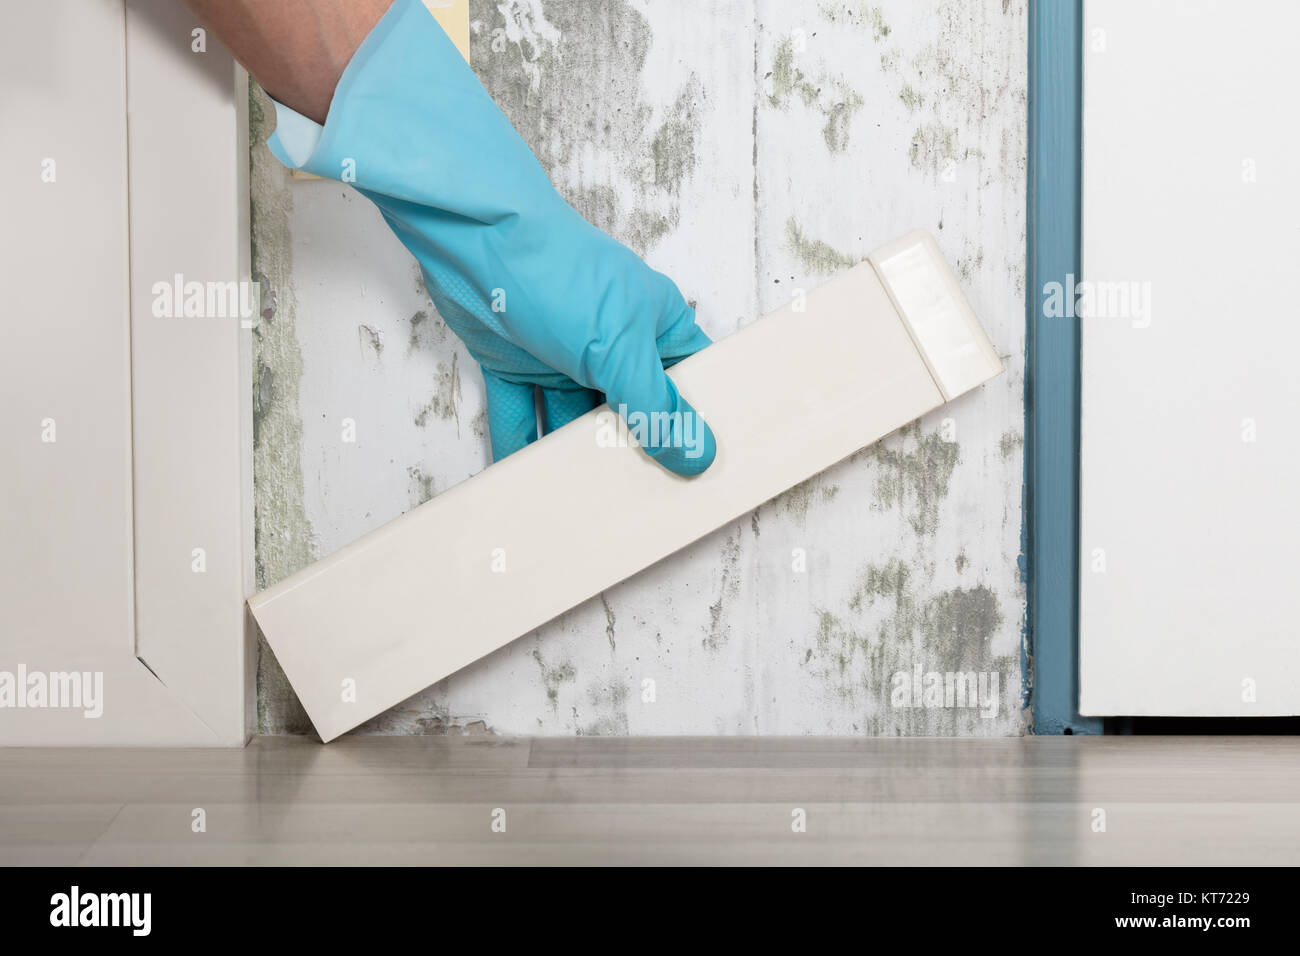 Person Placing Tiles On Moldy Wall Stock Photo: 169800353 - Alamy